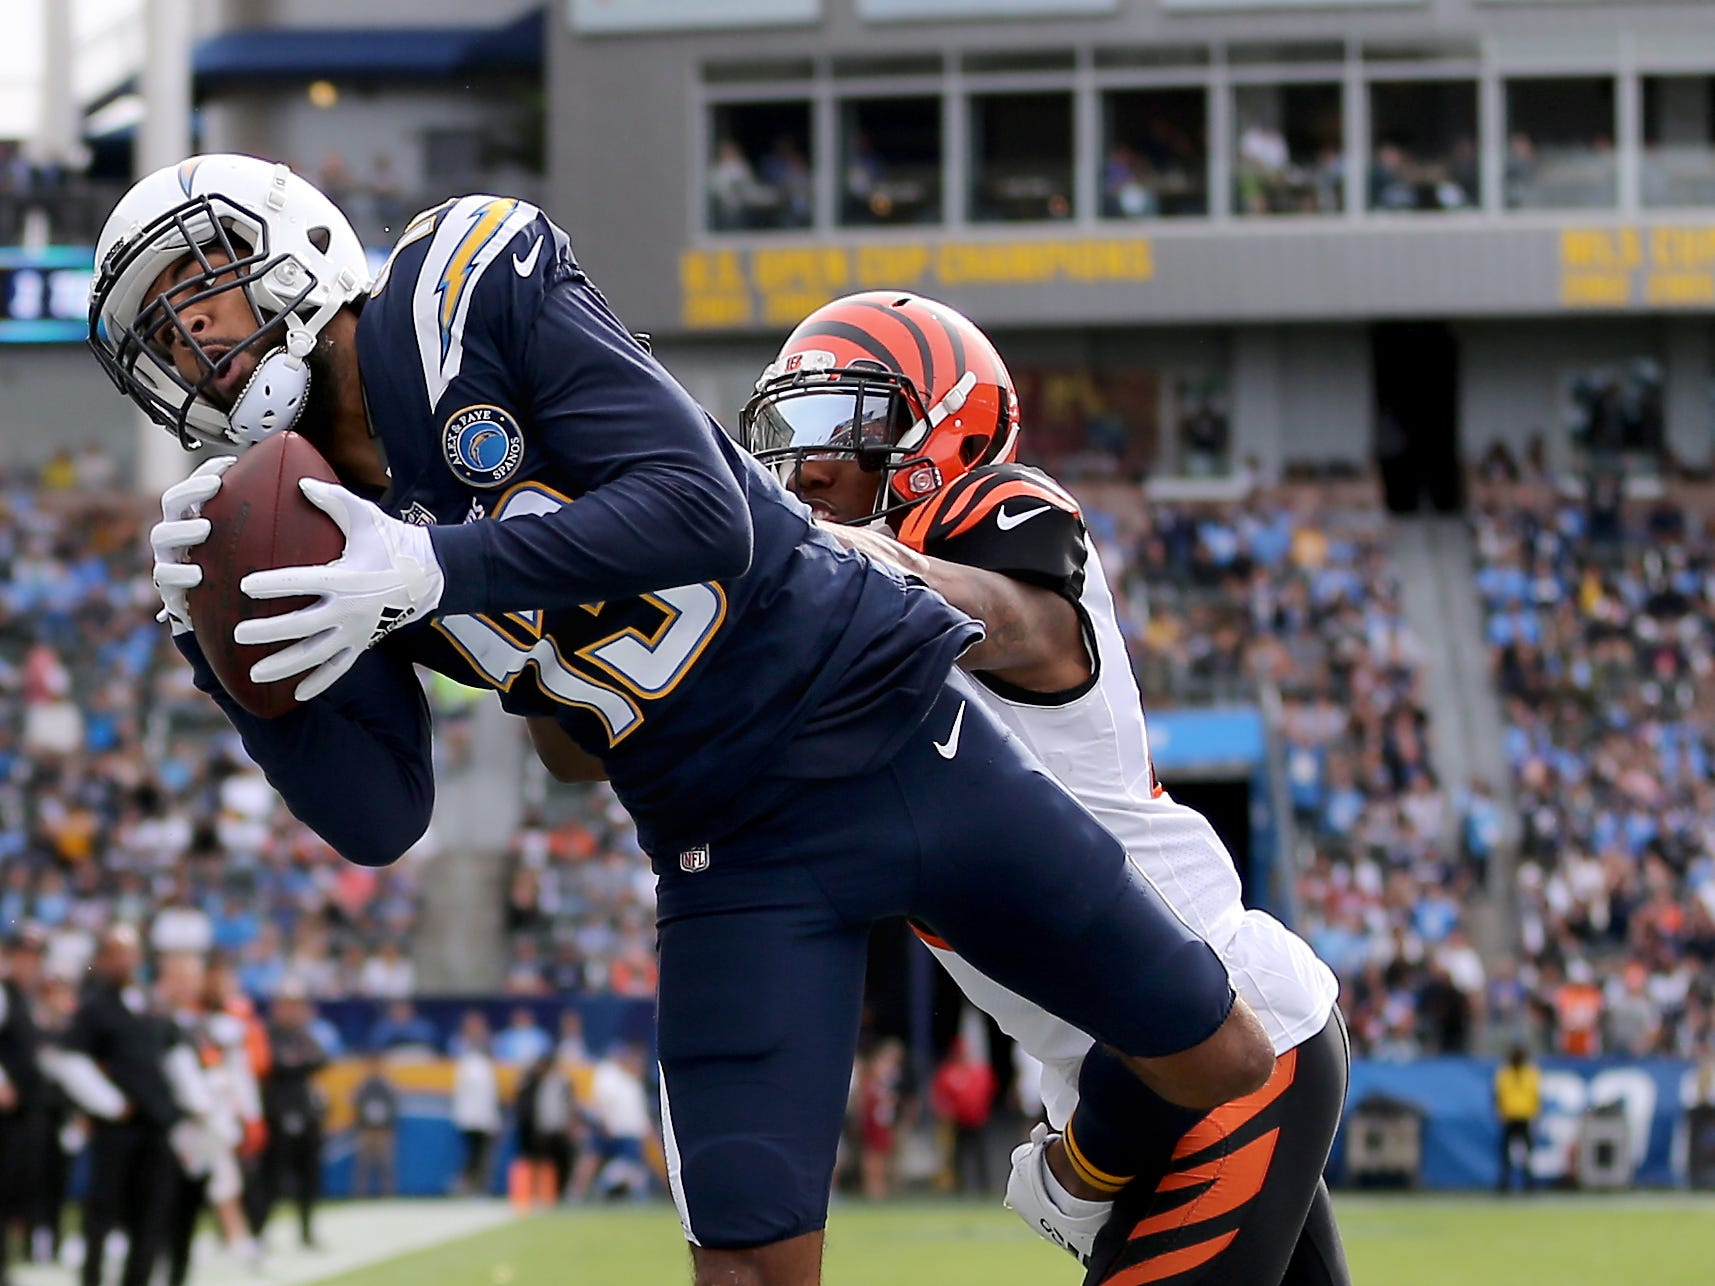 Los Angeles Chargers wide receiver Keenan Allen (13) catches a touchdown pass as Cincinnati Bengals defensive back Darqueze Dennard (21) defends in the first quarter of a Week 14 NFL football game, Sunday, Dec. 9, 2018, at StubHub Center in Carson, California.